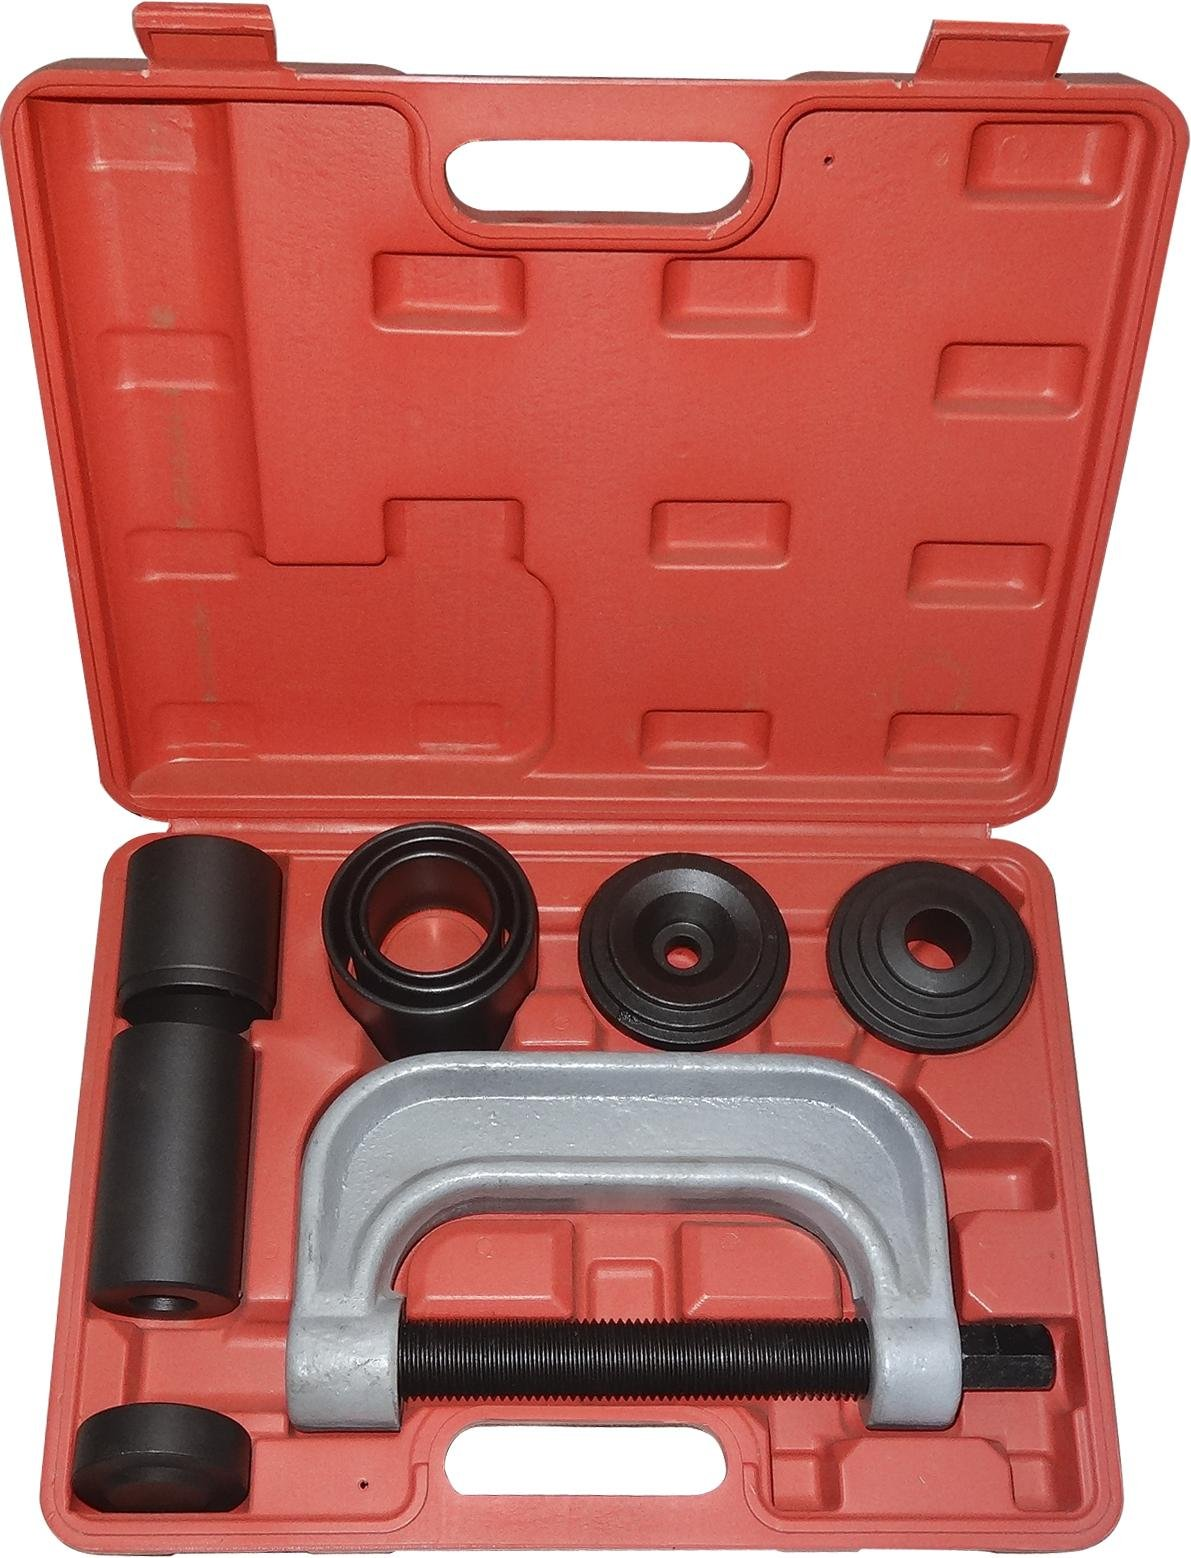 HFS R 4-in-1 Ball Joint Deluxe Service Kit Tool Set 2wd & 4wd Vehicles Remover Install